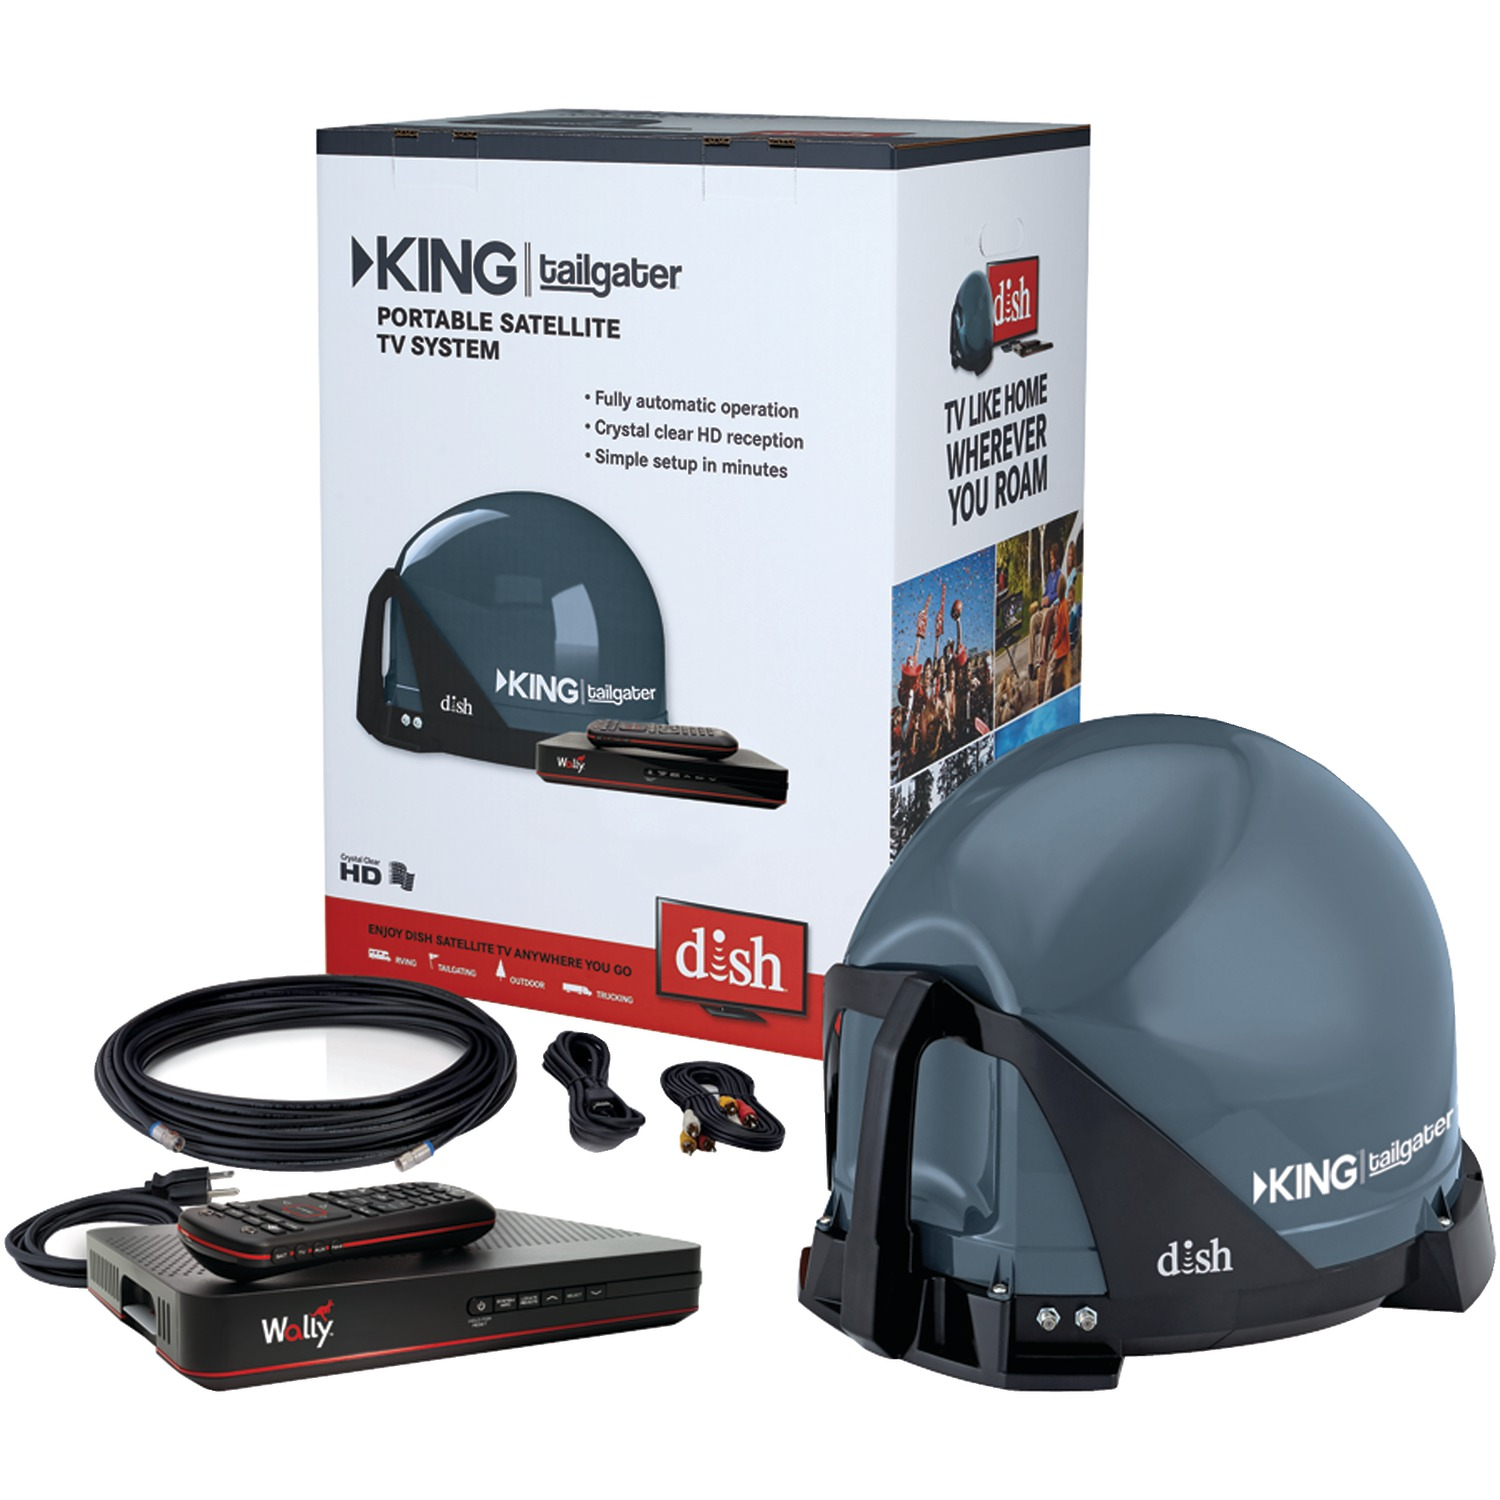 KING VQ4550 Tailgater Bundle - Portable Satellite TV Antenna with DISH Wally HD Receiver for RVs, Trucks, Tailgating, Camping and Outdoor